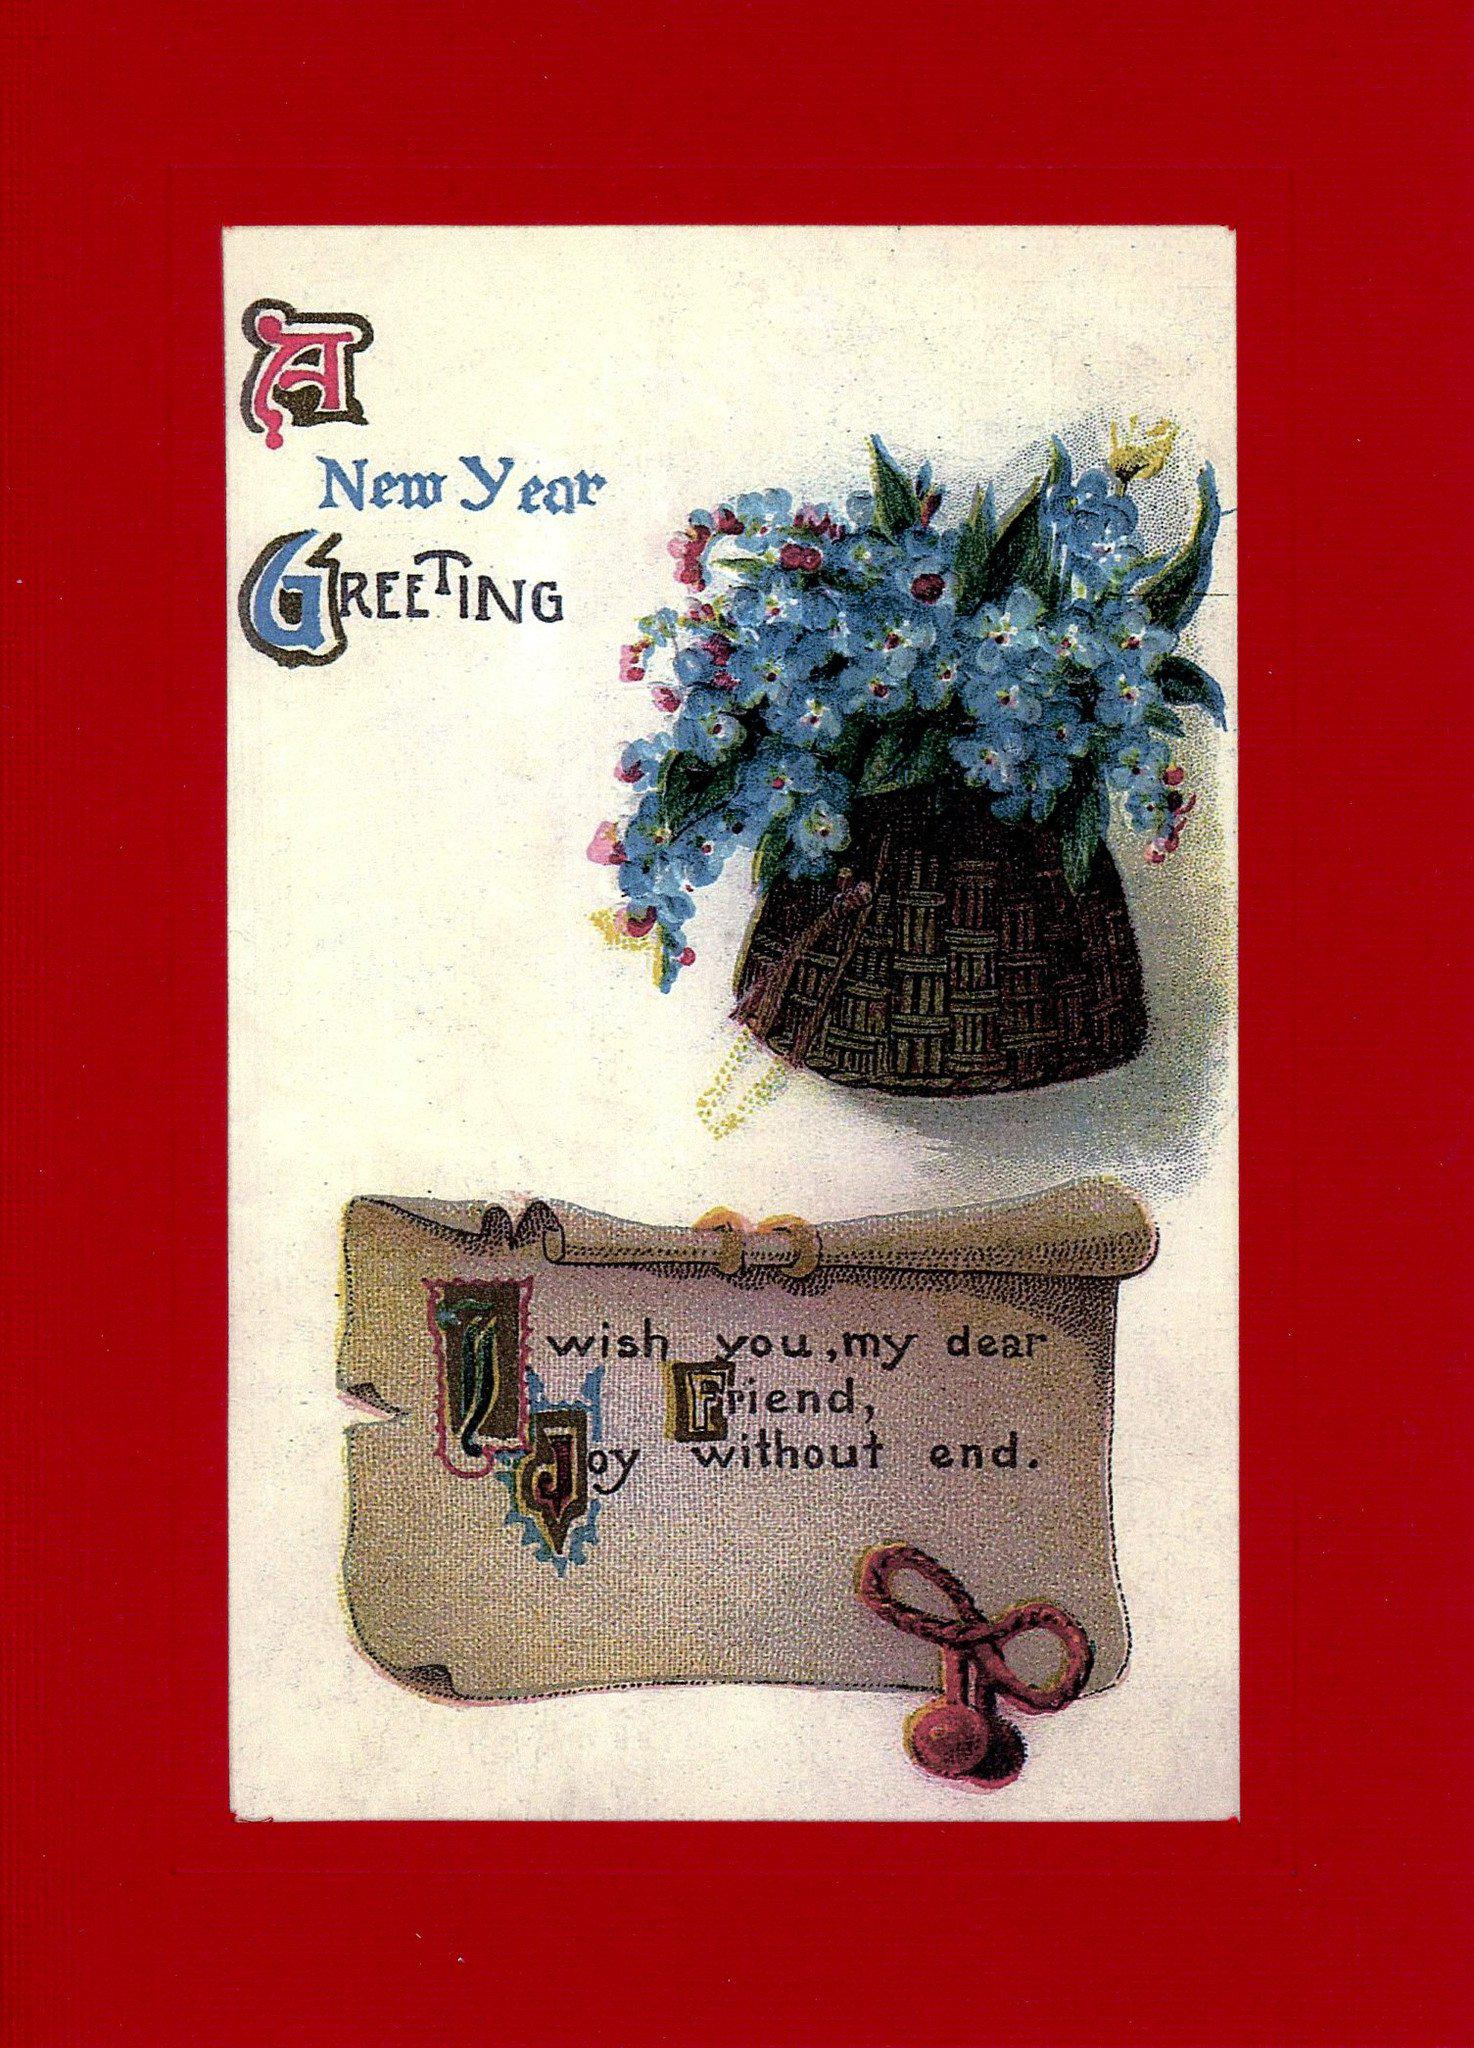 A New Year Greeting-Greetings from the Past-Plymouth Cards